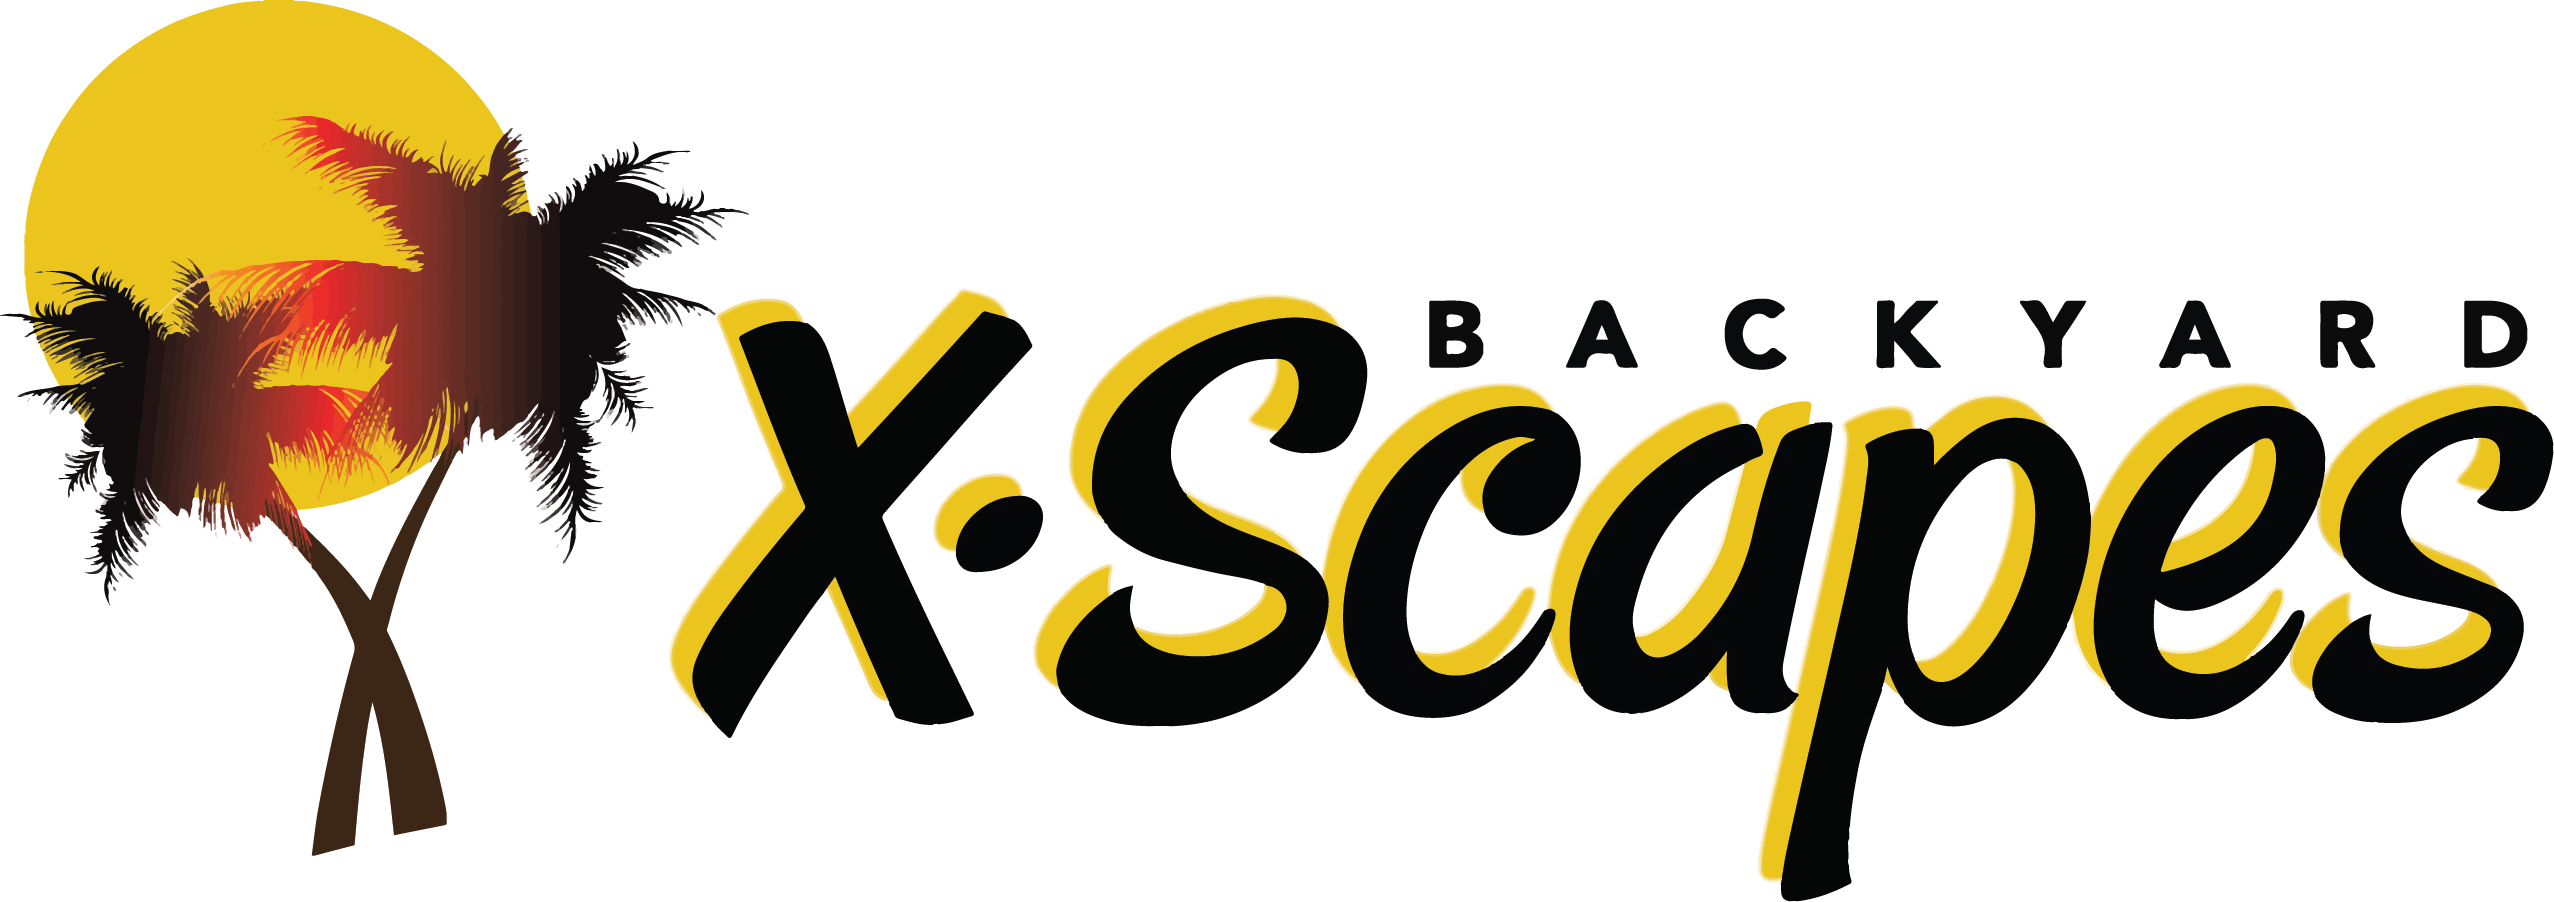 Backyard X-Scapes backyard x-scapes updates logo and launches new website | newswire